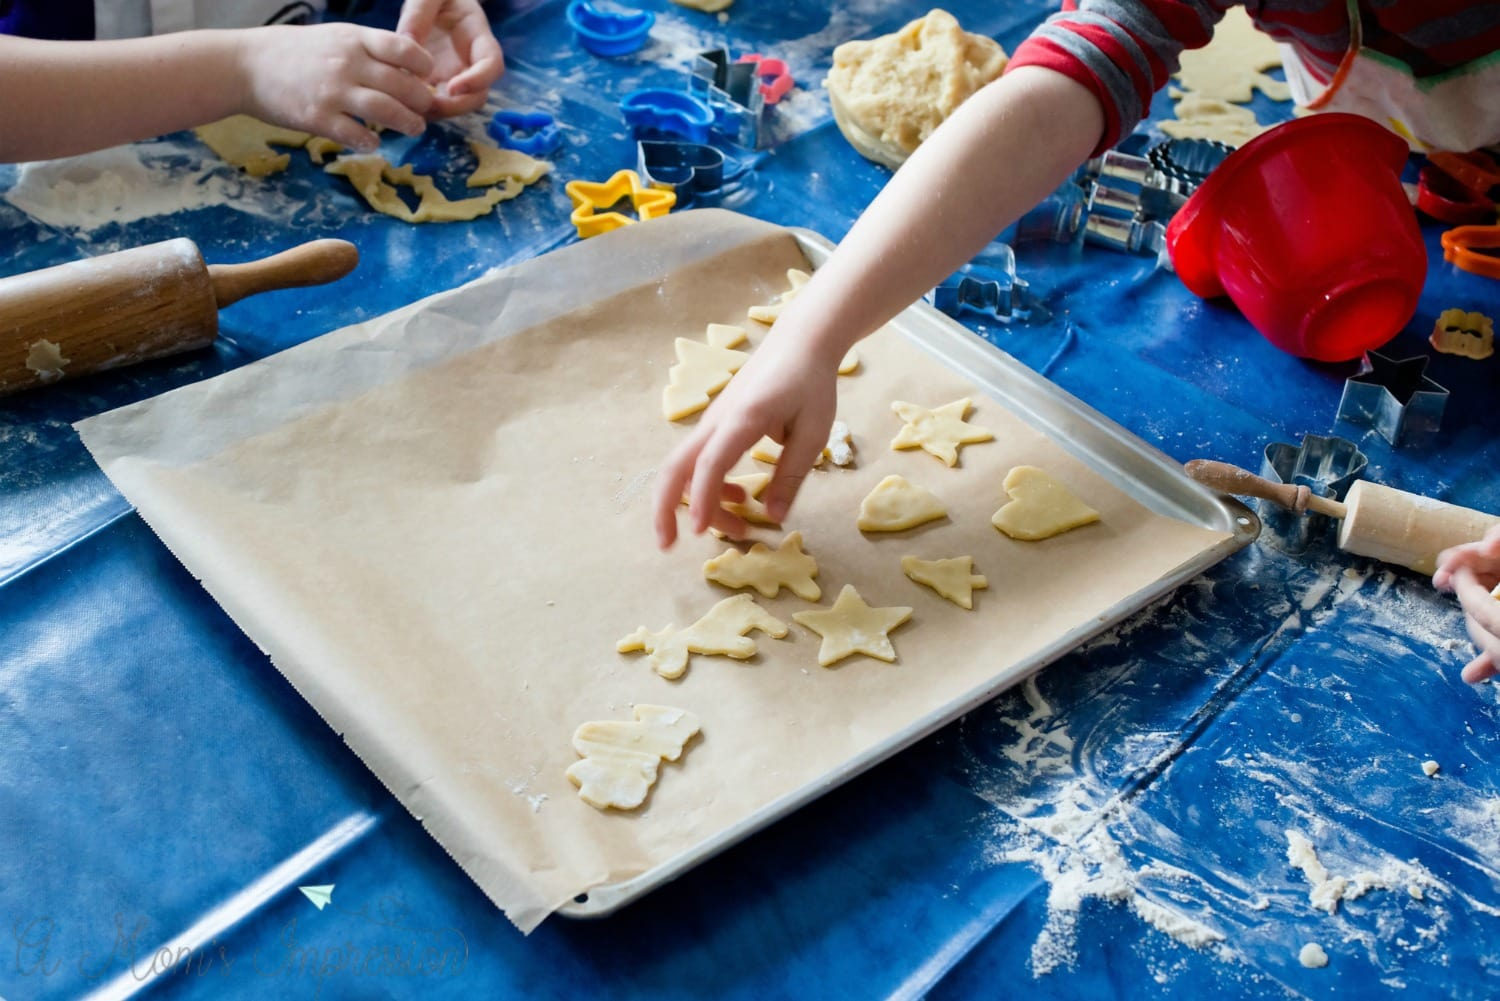 child's hands cutting Christmas cookies